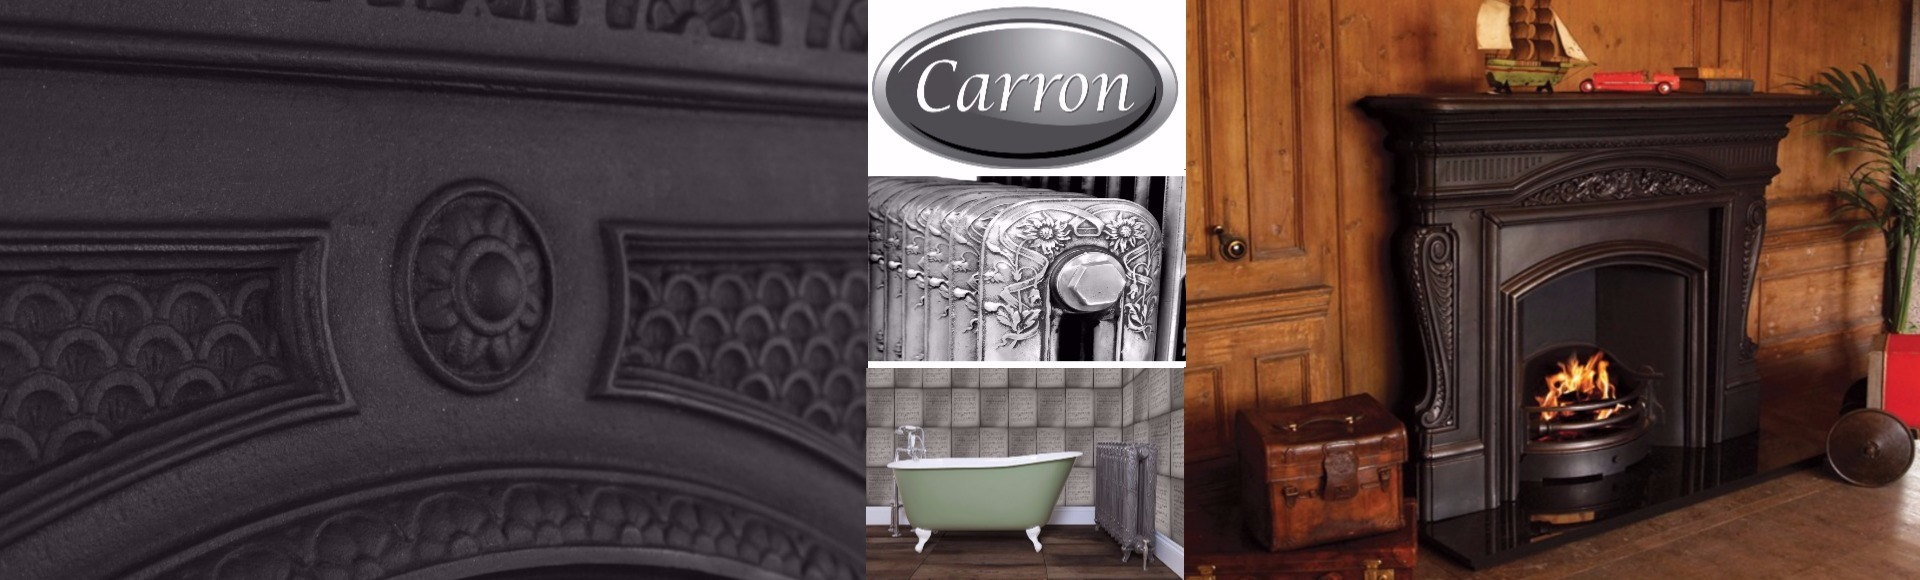 Antique & New Carron Fireplaces